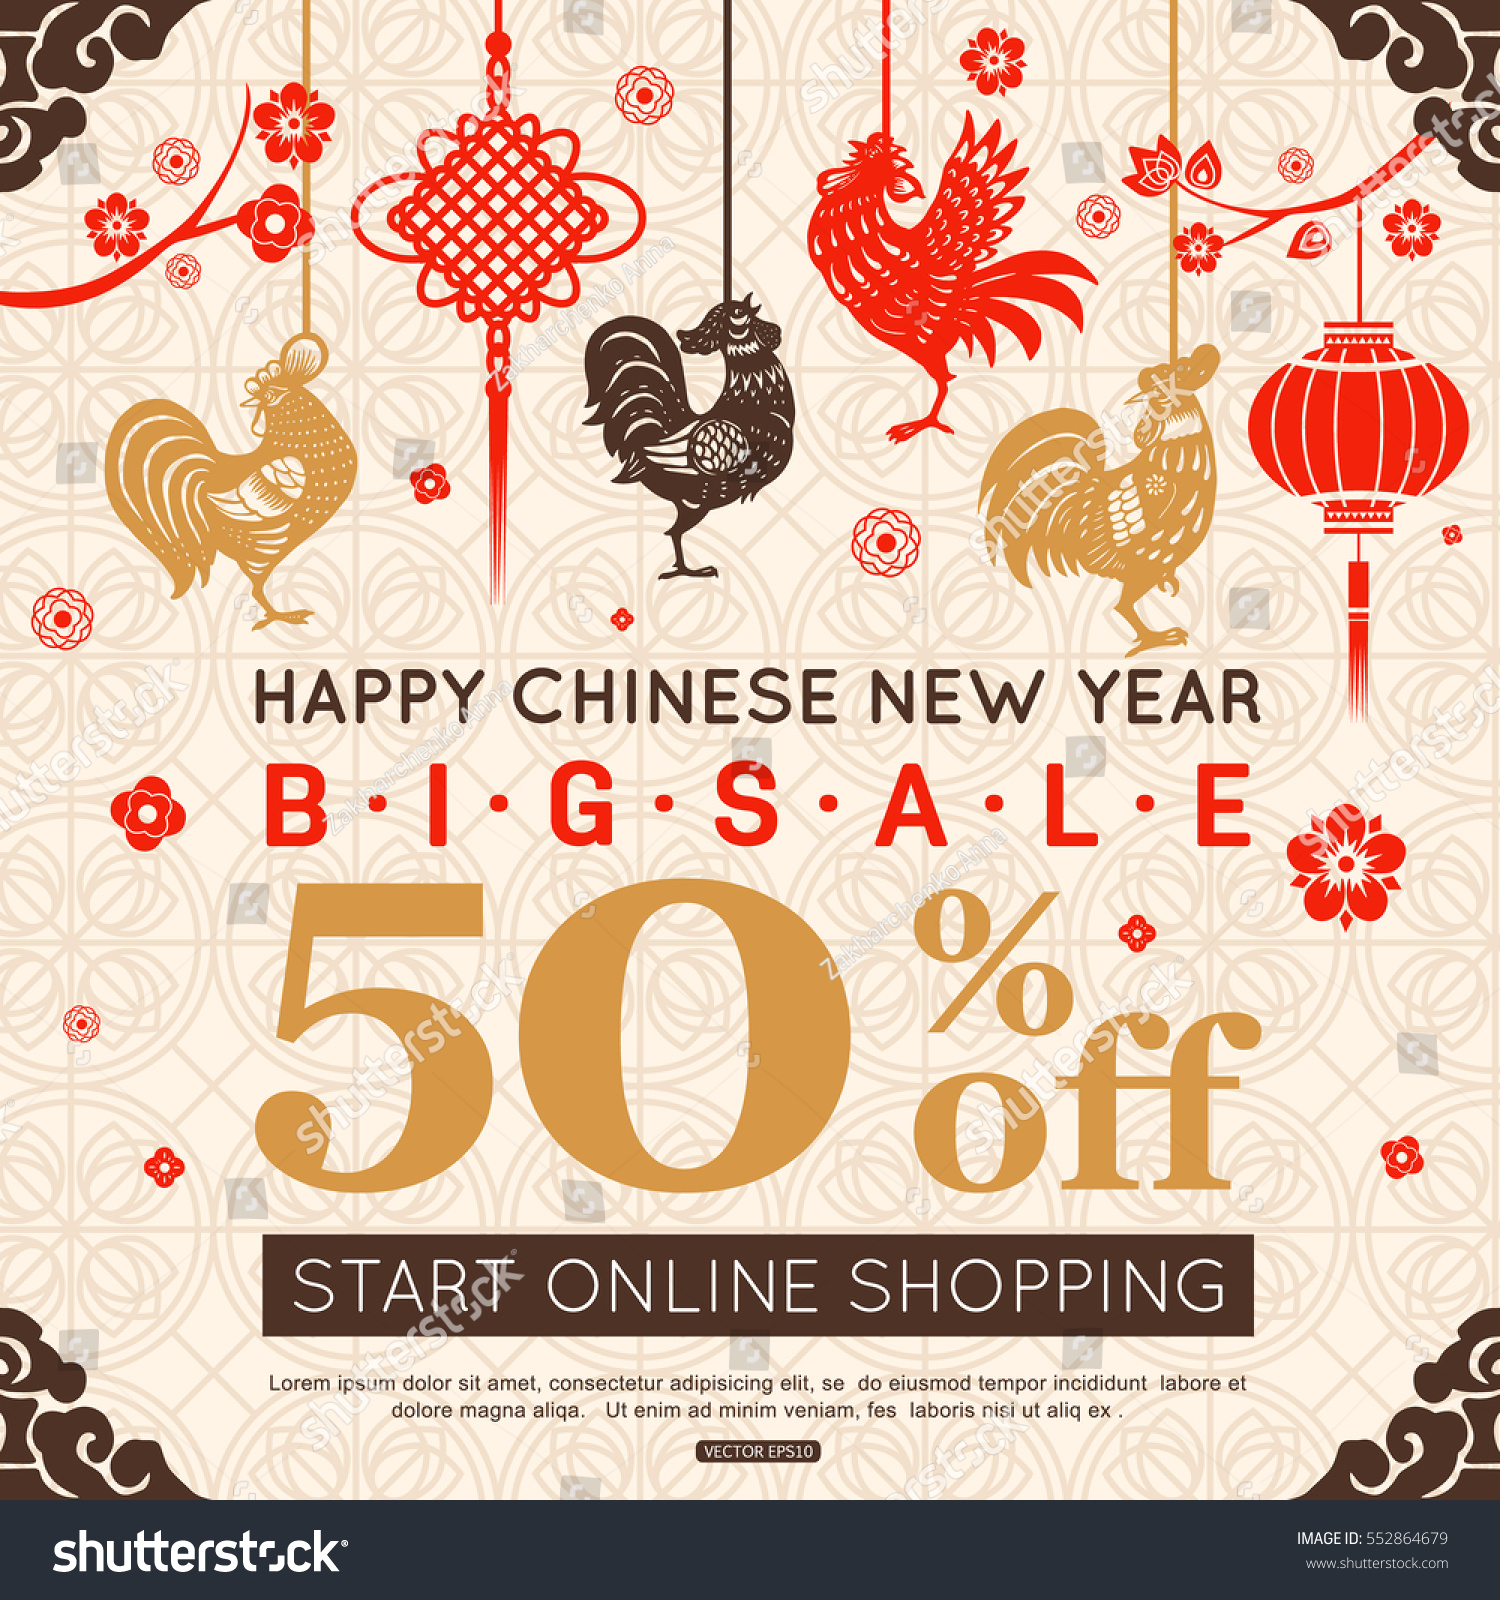 chinese new year sale banner with hanging rooster flower lantern vector illustration